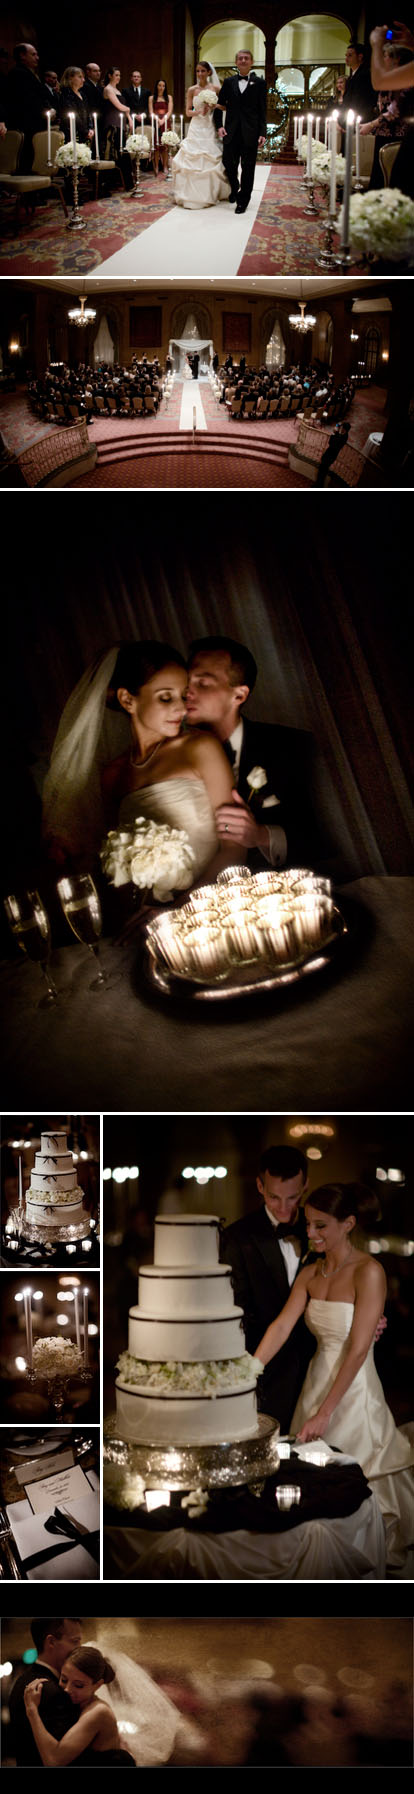 J Garner Photography, romantic ivory and black winter wedding at the Seattle Fairmont Olympic Hotel